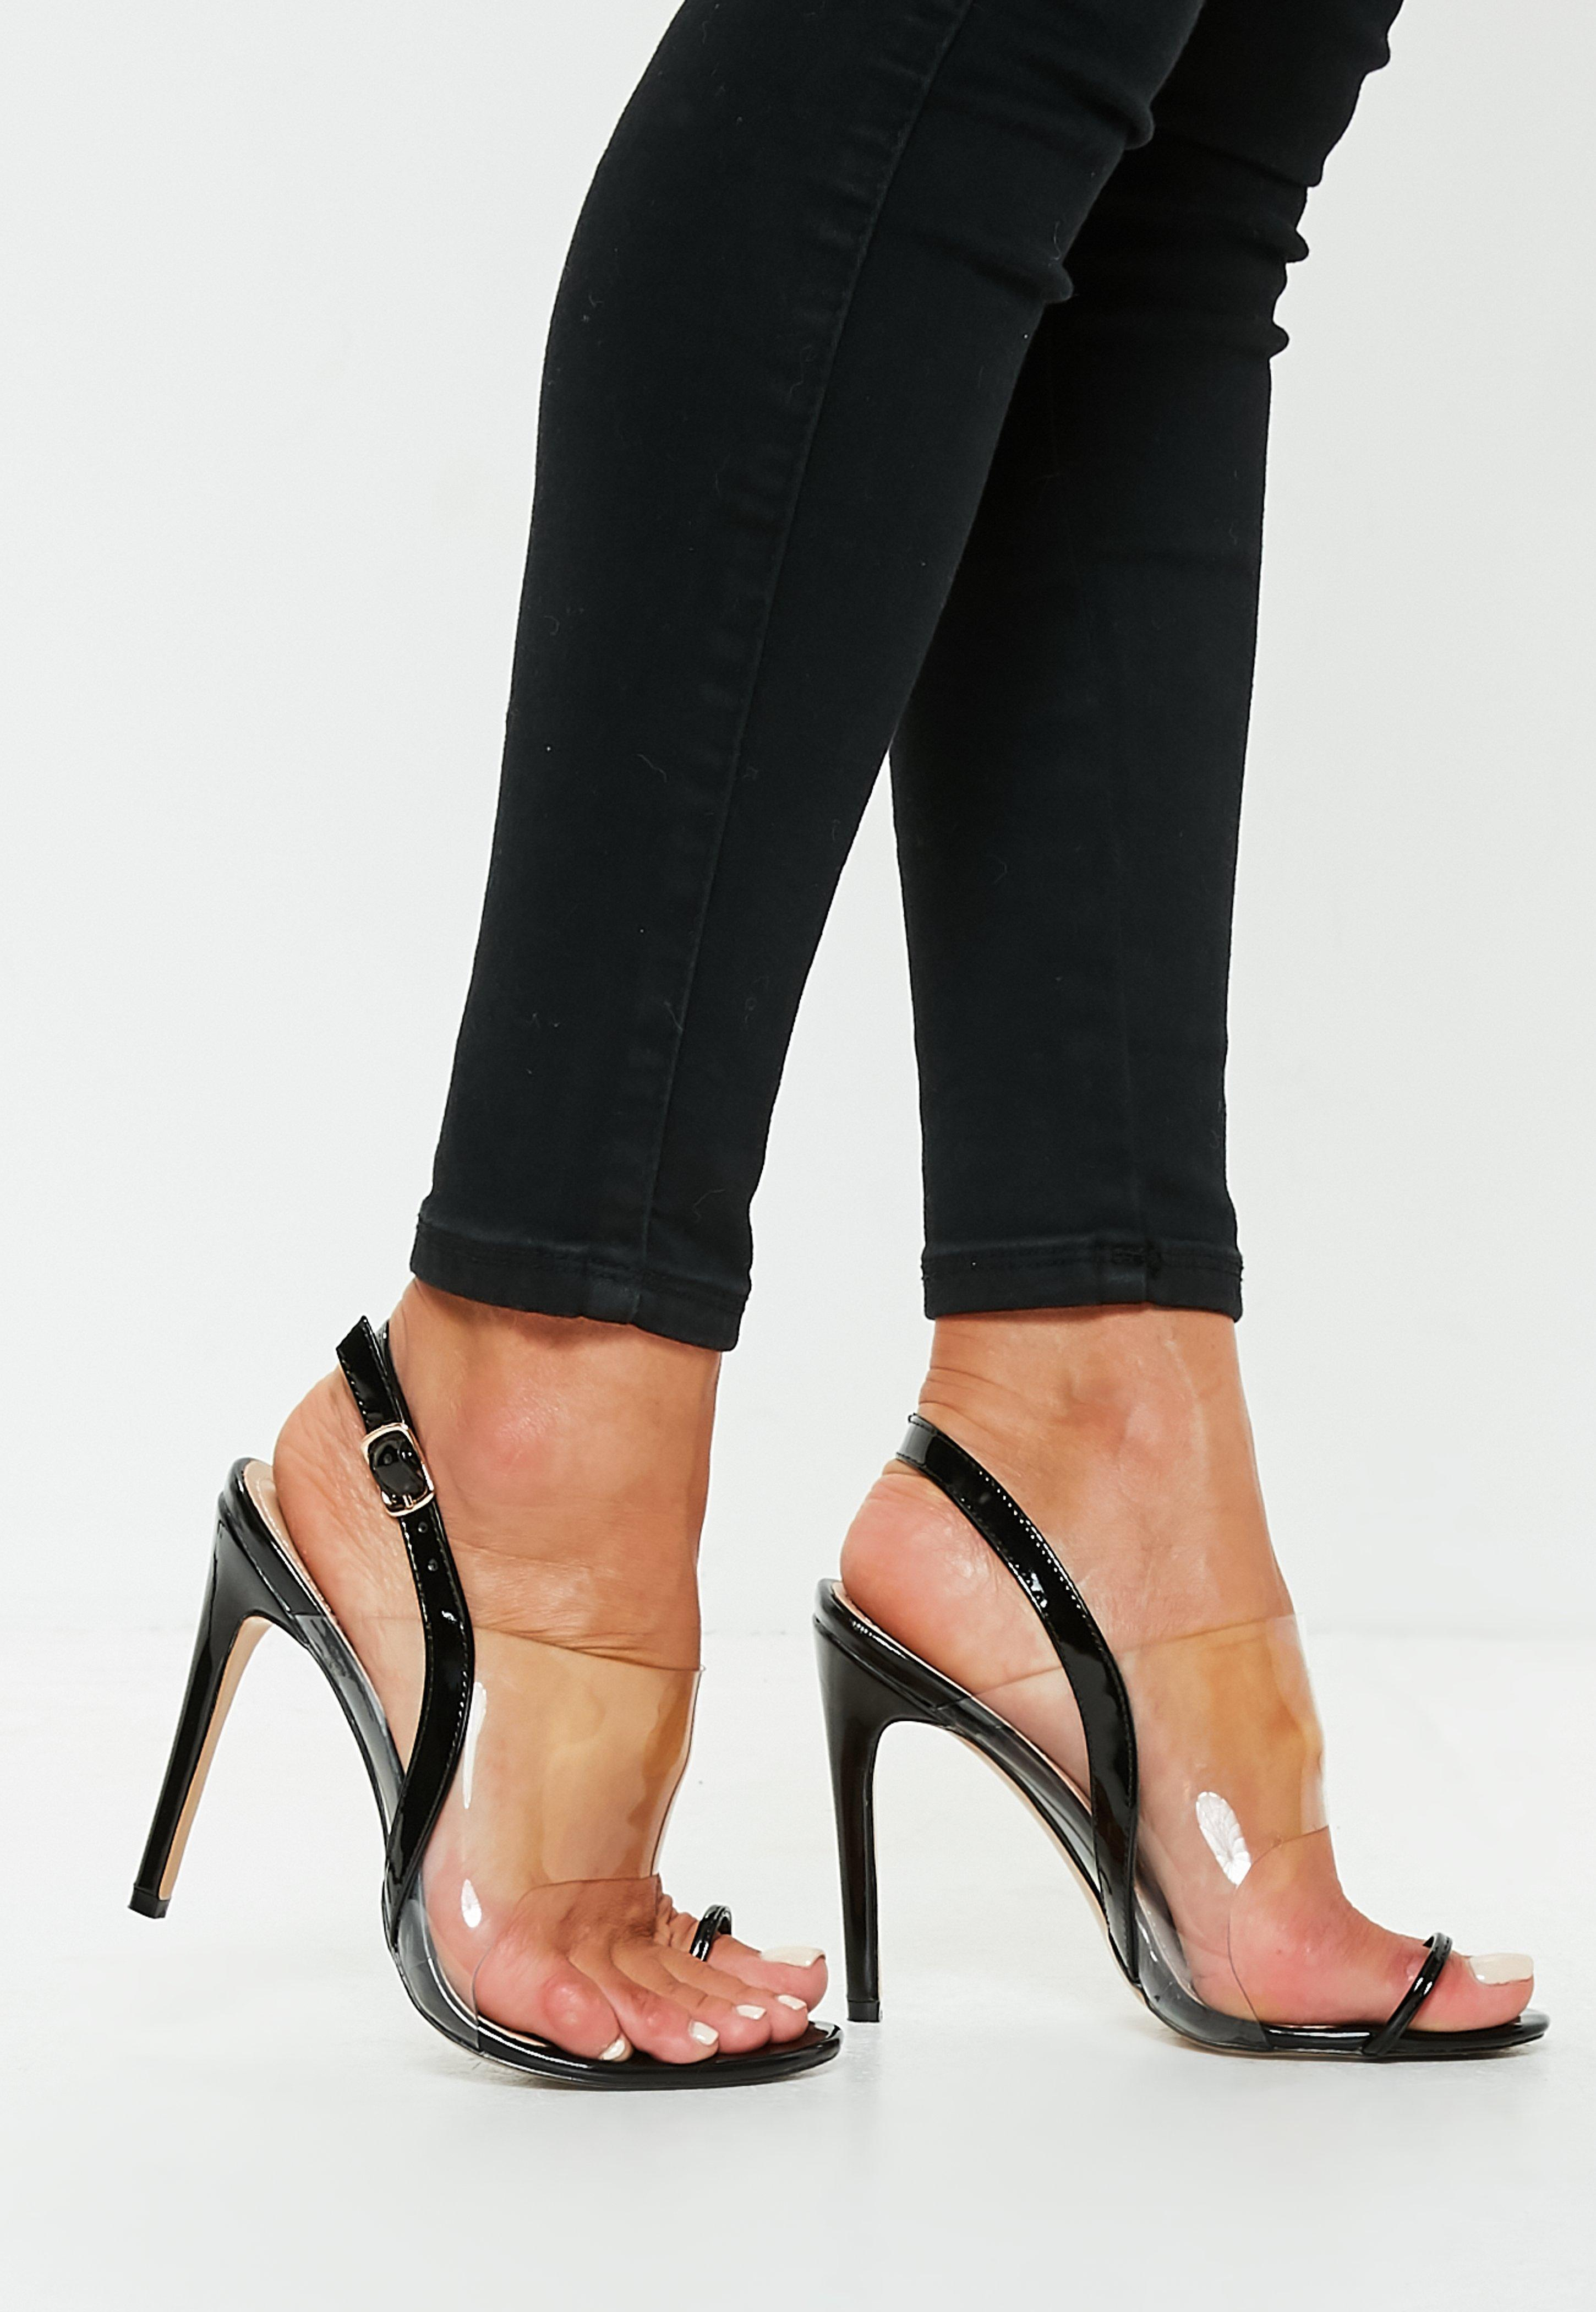 Nude Clear Strap Heels Sexy Transparent Stilettos Ankle